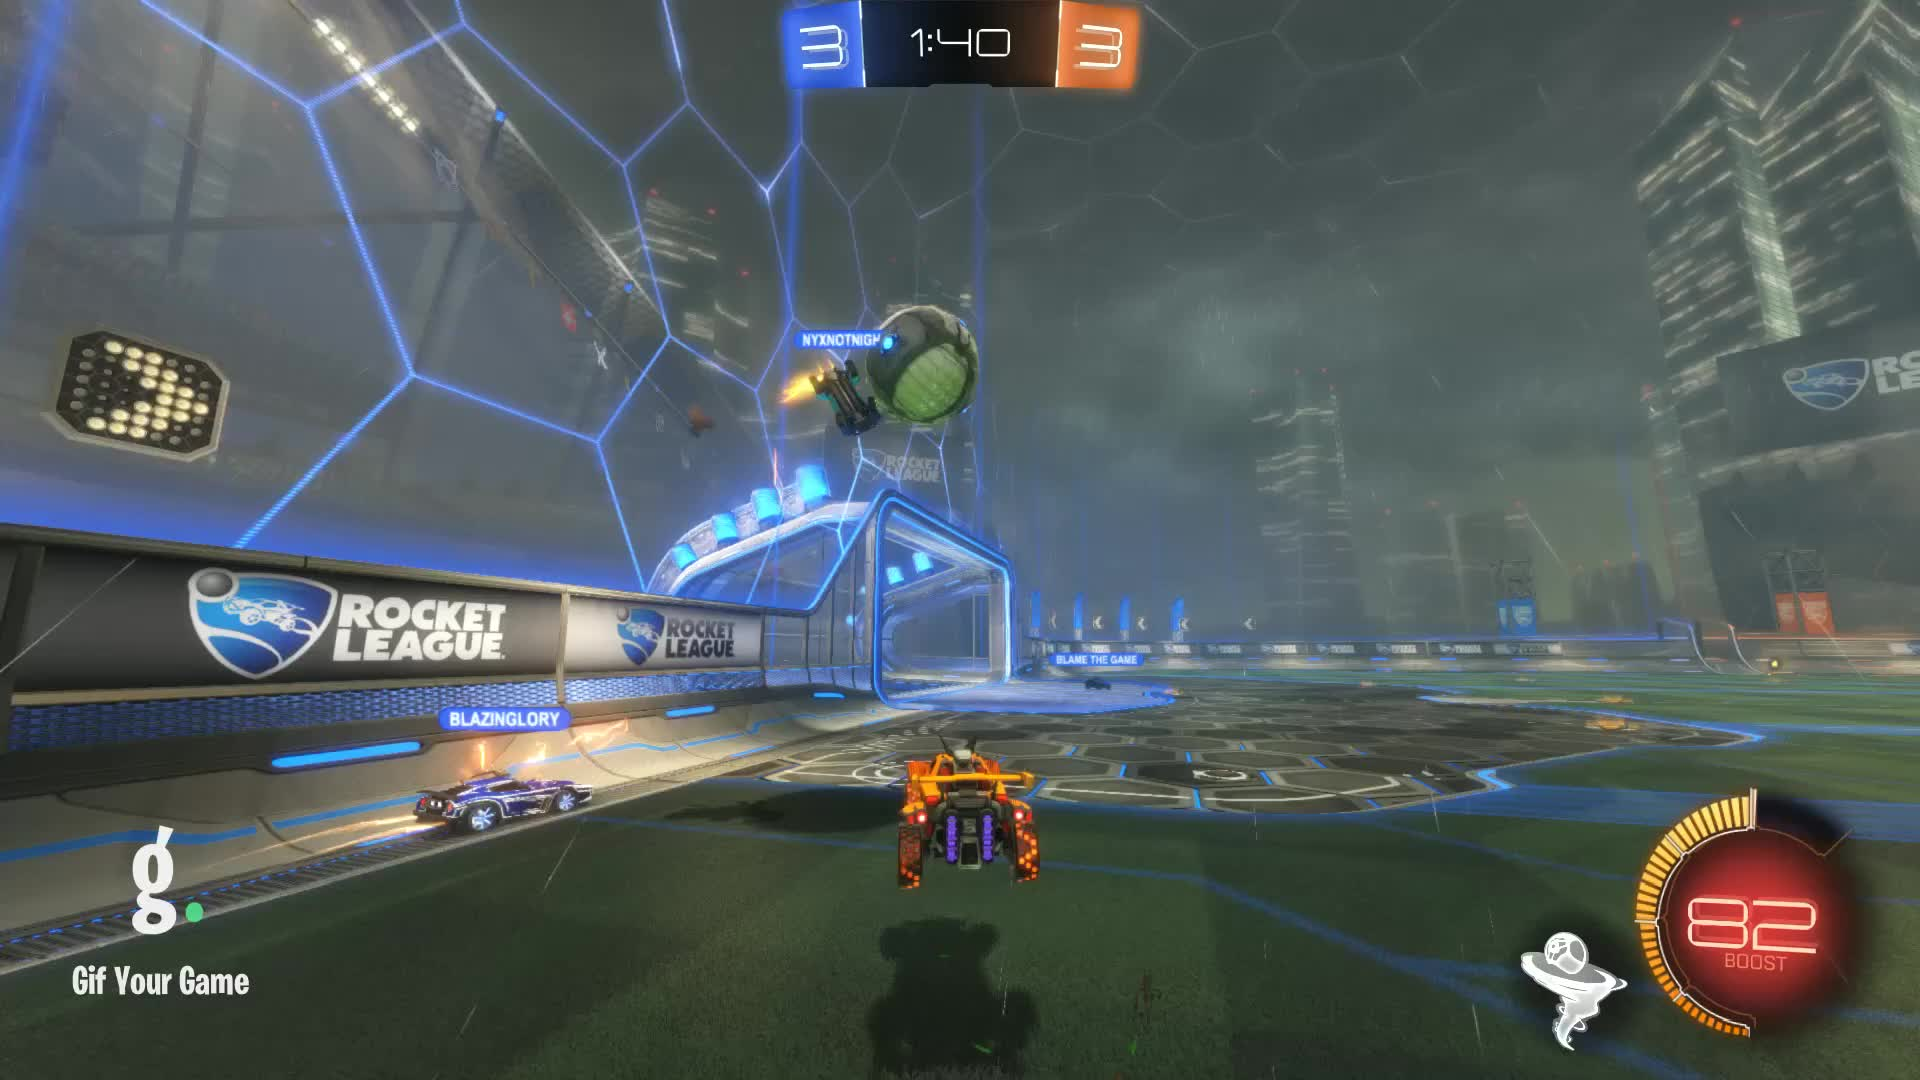 Gif Your Game, GifYourGame, Goal, Mr_Inconsist3nt, Rocket League, RocketLeague, Goal 7: Mr_Inconsist3nt GIFs